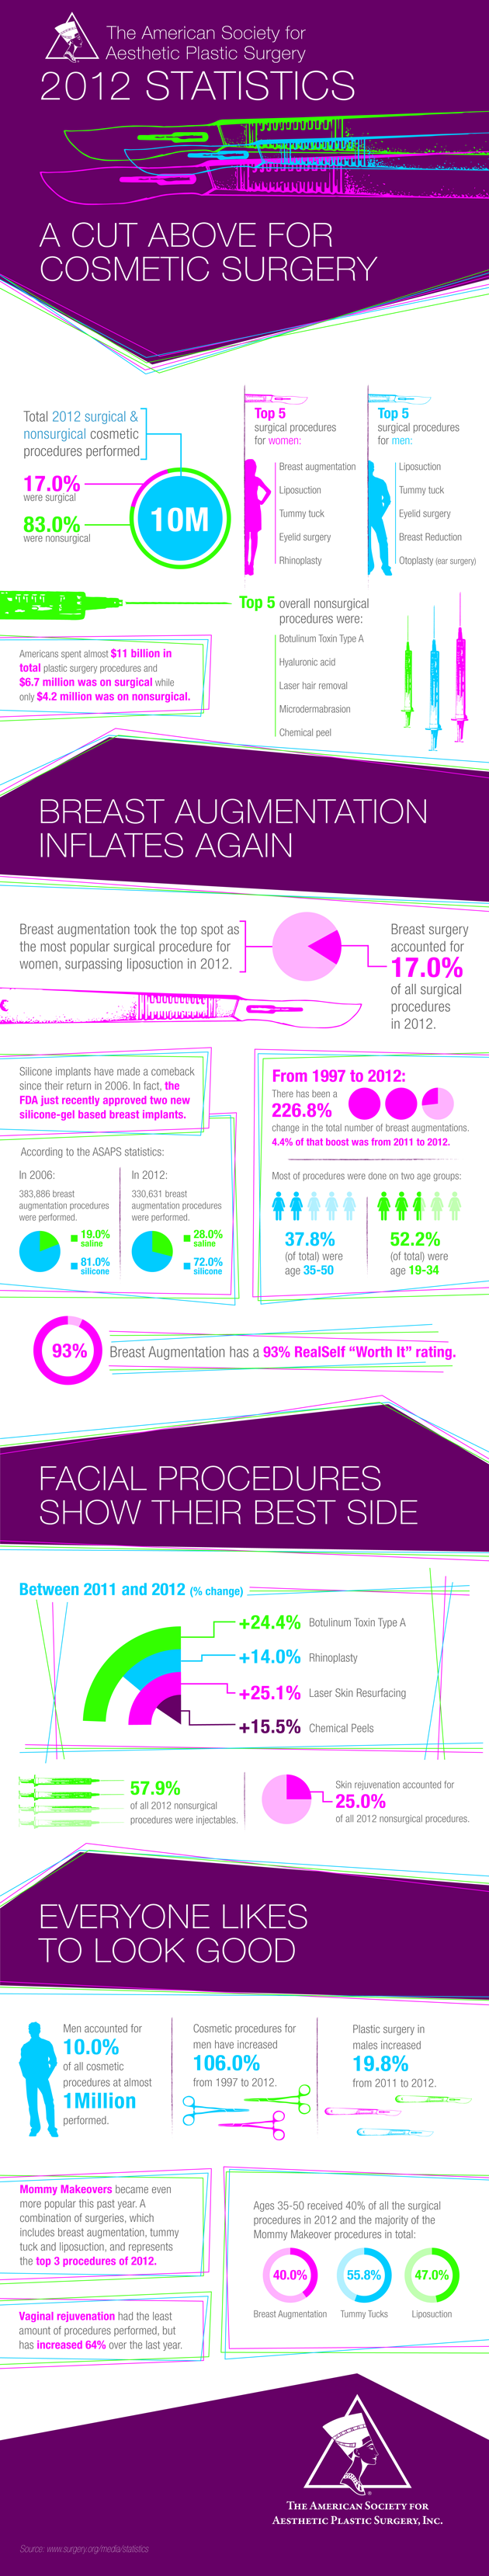 Injectables and Male Plastic Surgery Grow in Popularity in 2012